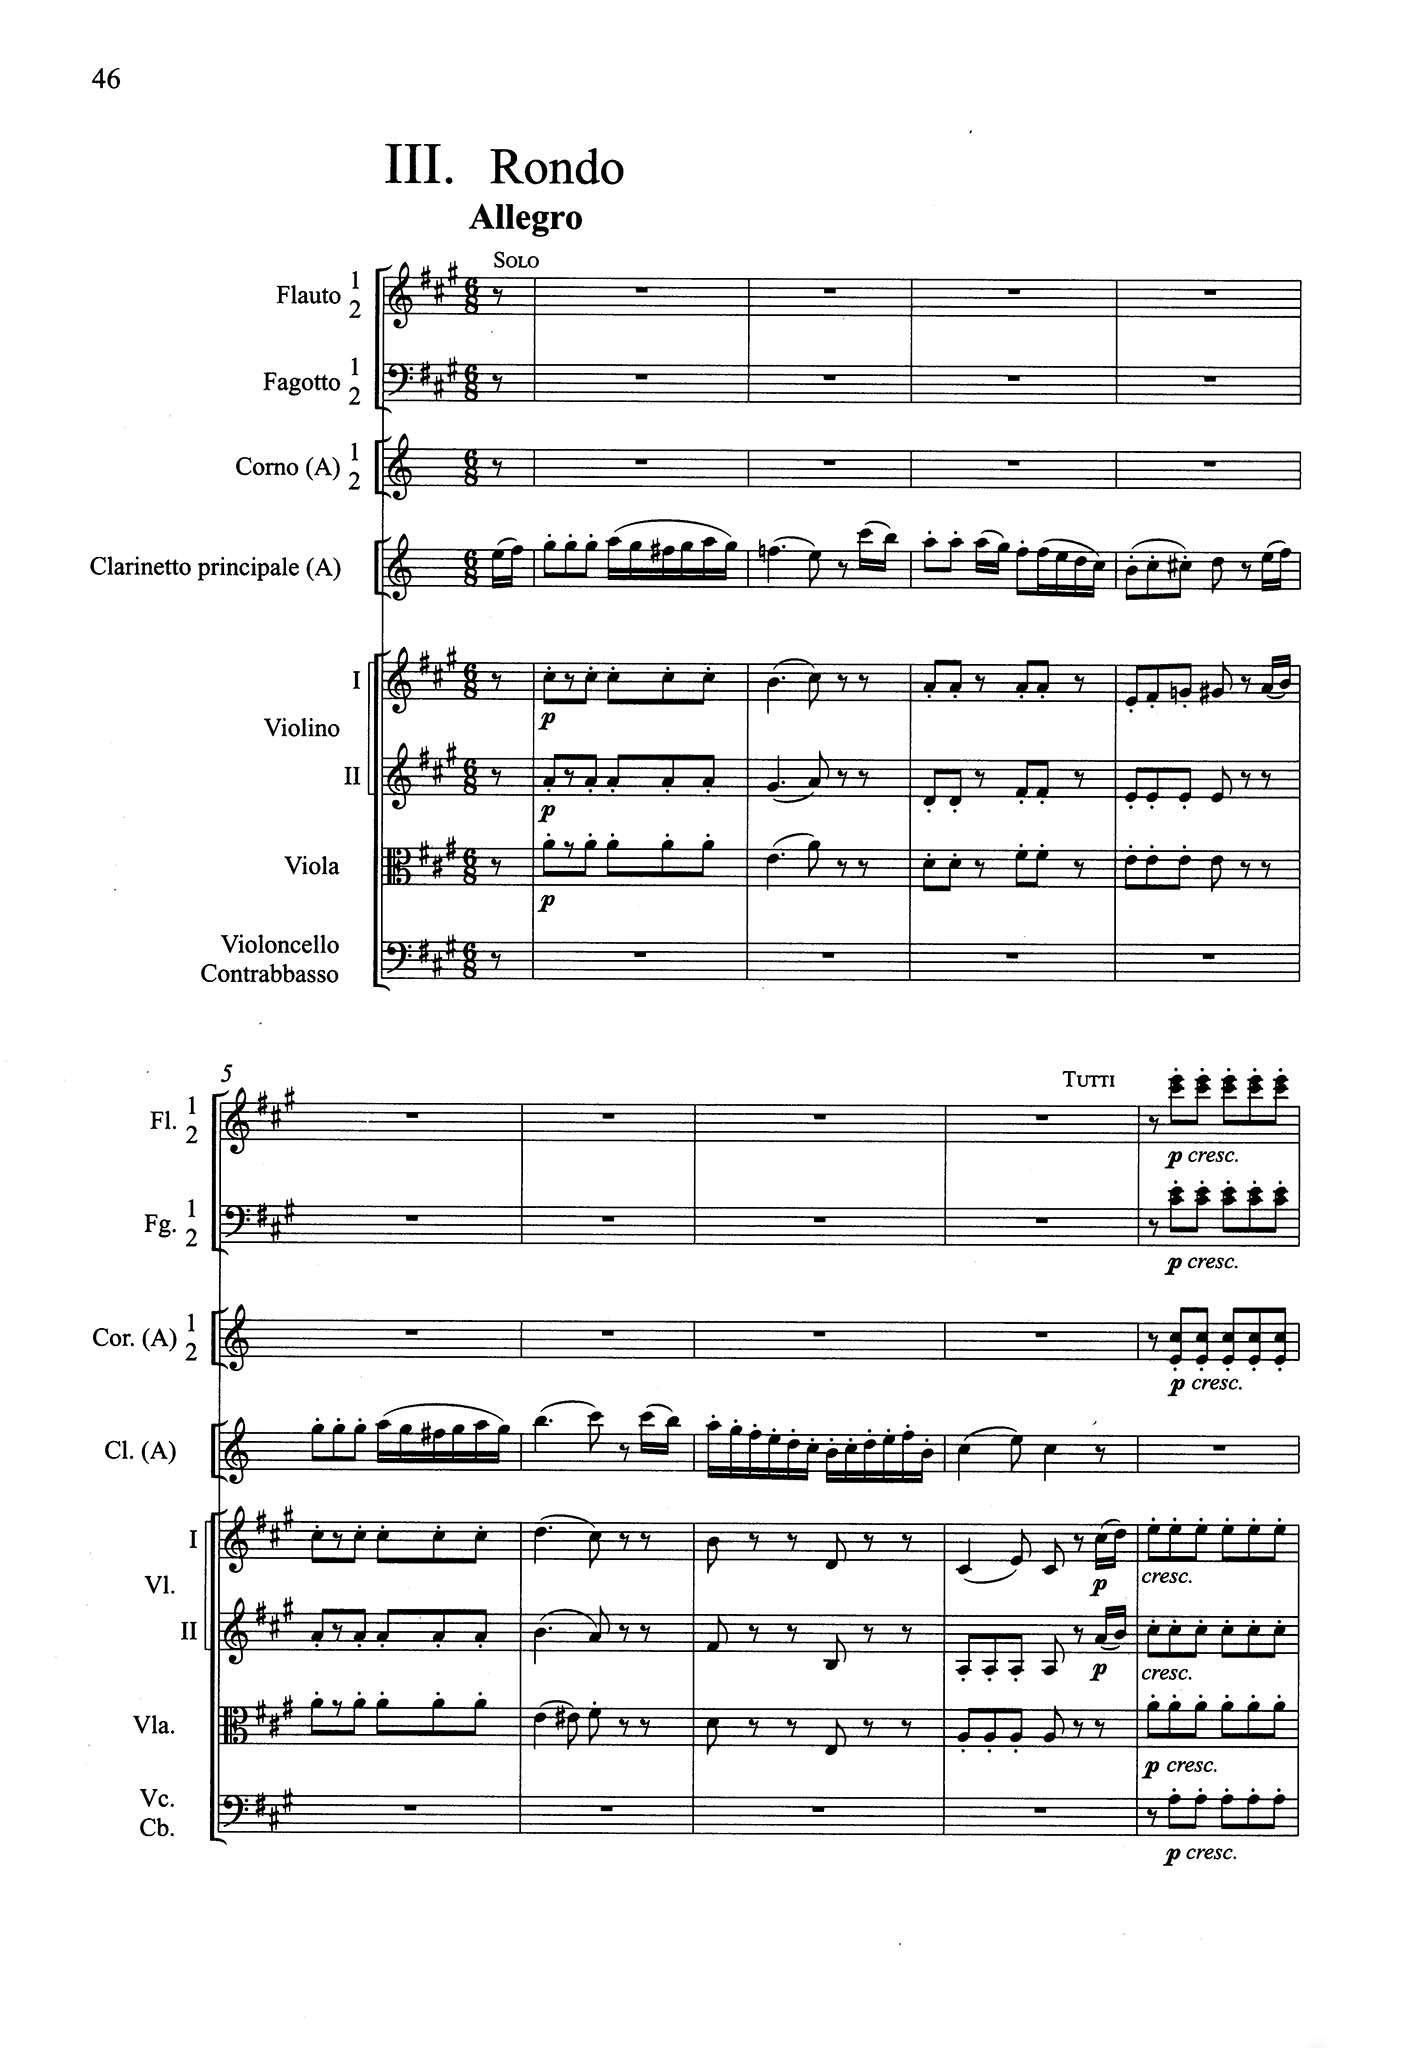 Clarinet Concerto in A Major, K. 622 - Movement 3